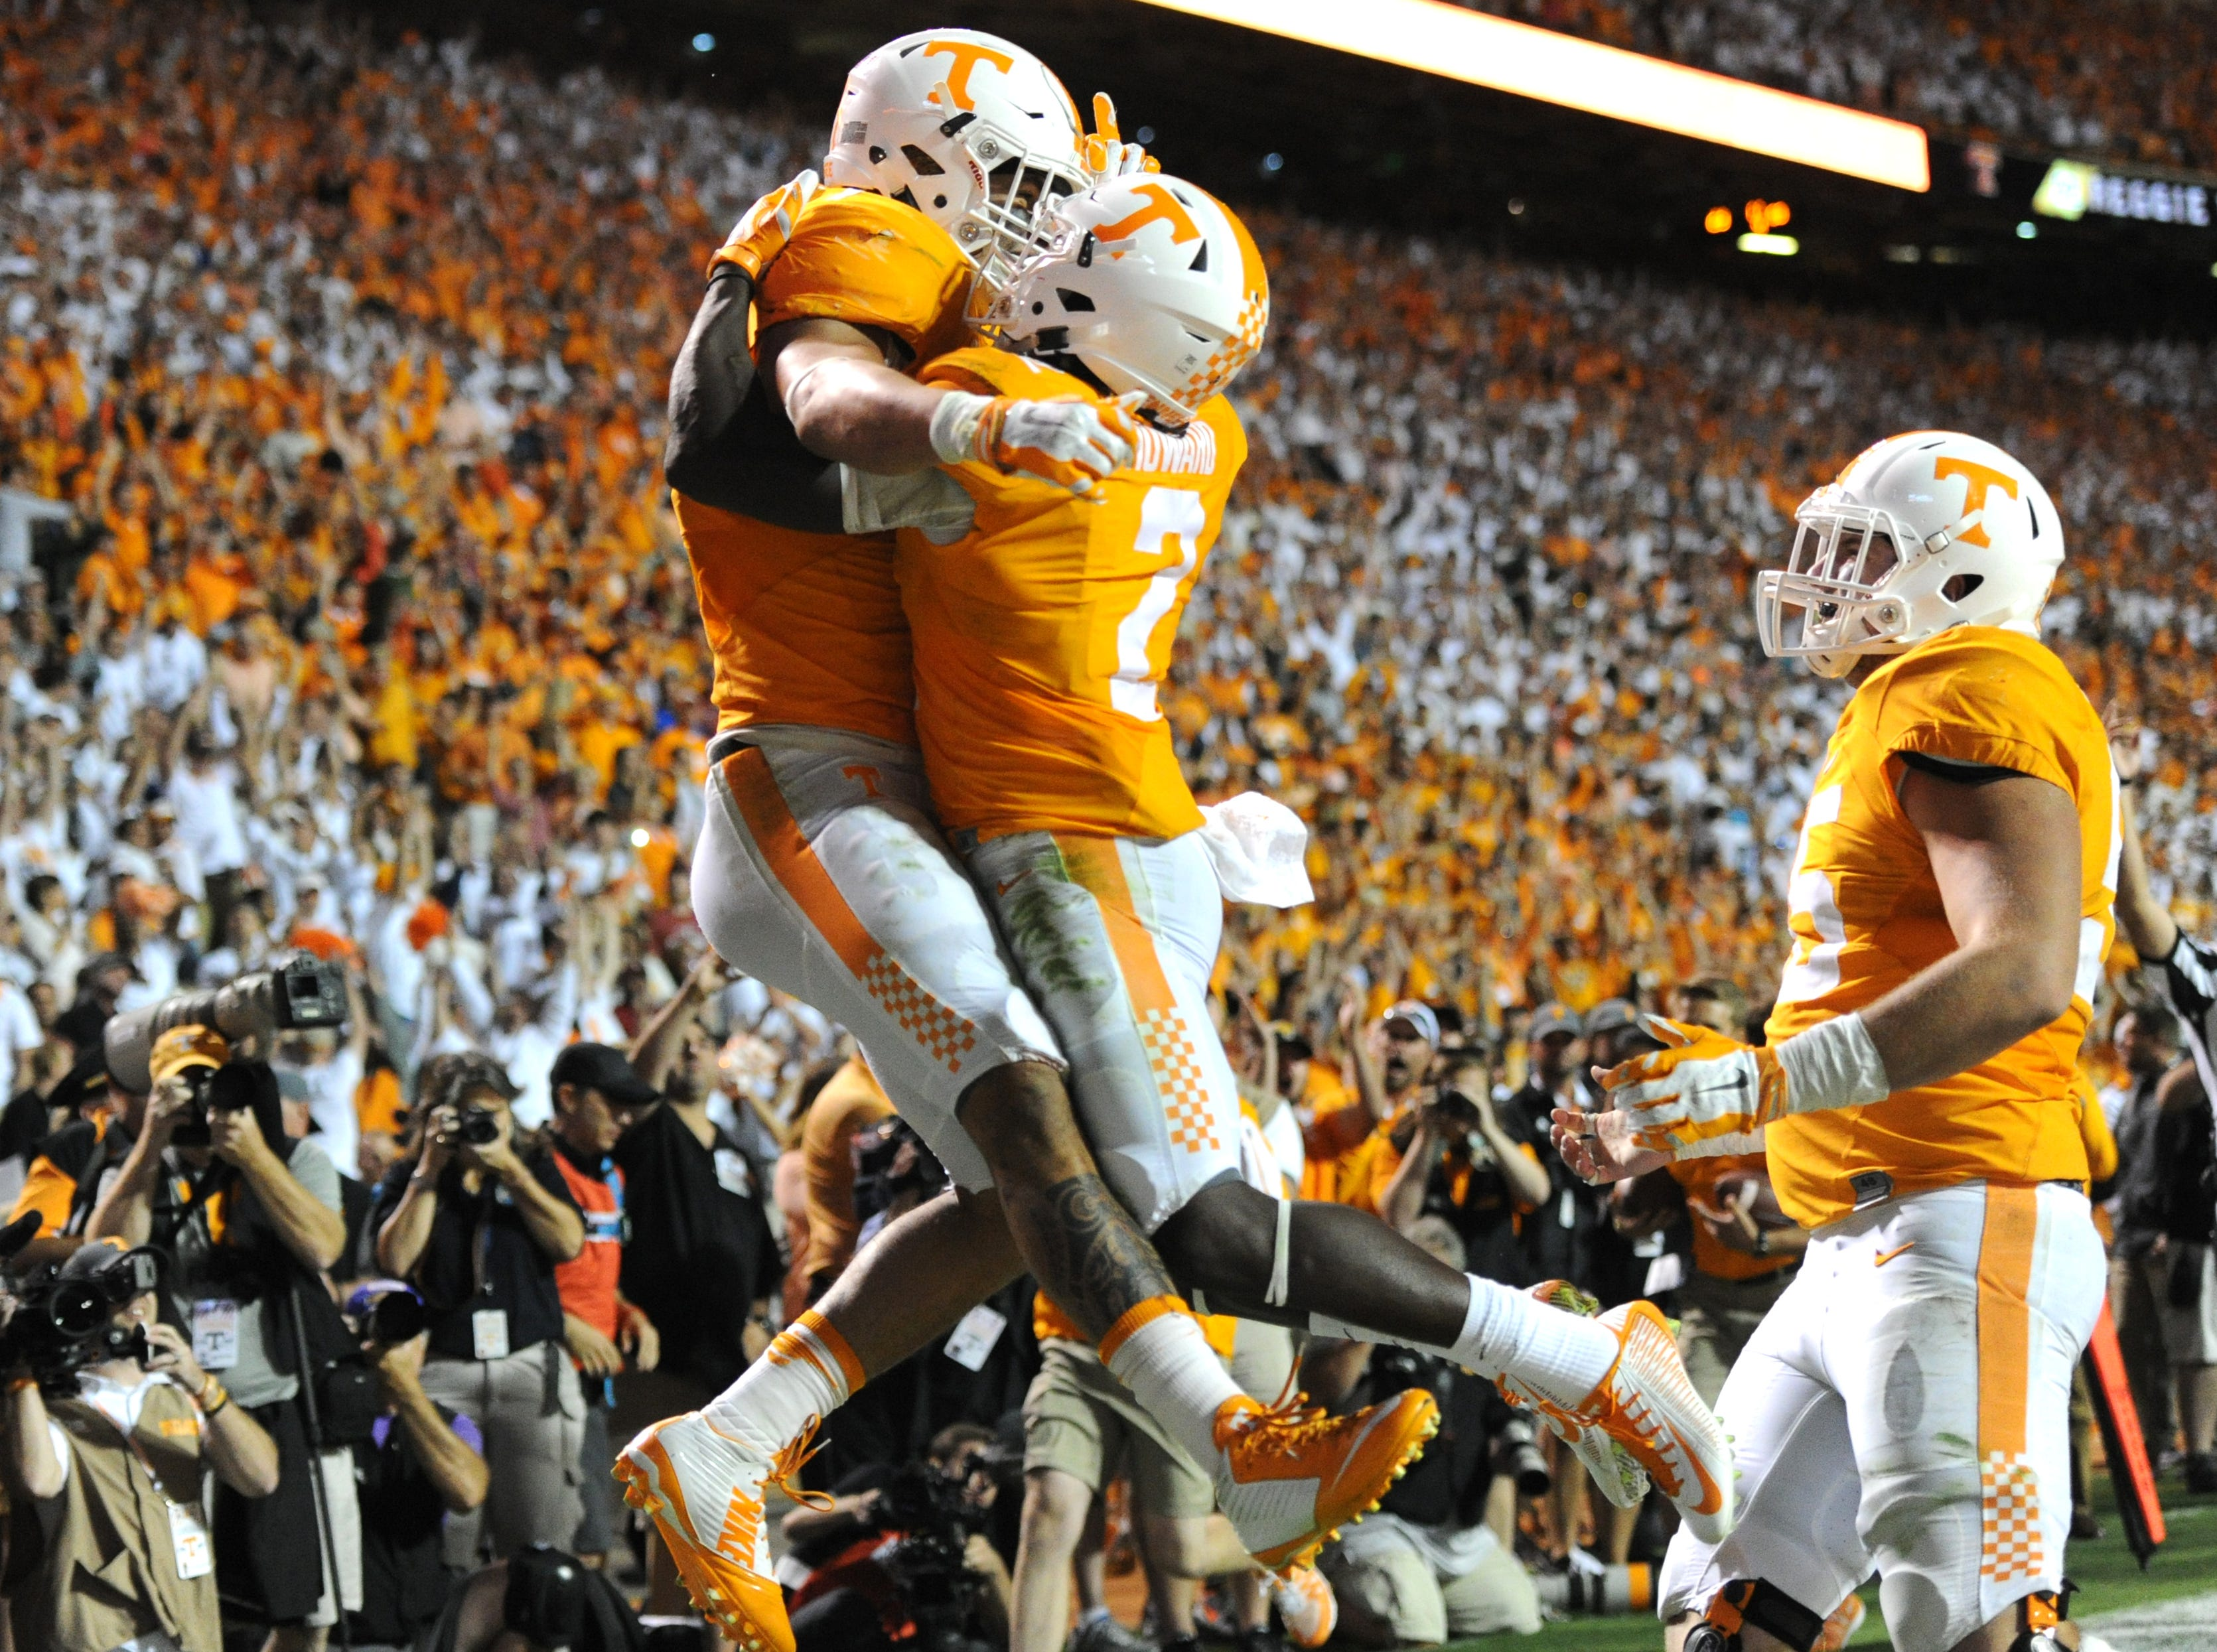 Tennessee running back Jalen Hurd (1) and Tennessee wide receiver Pig Howard (2) celebrate after Hurd beat Oklahoma safety Ahmad Thomas (13) for a touchdown in the first overtime period at Neyland Stadium on Saturday, Sept. 12, 2015 in Knoxville, Tenn. Oklahoma won 31-24.